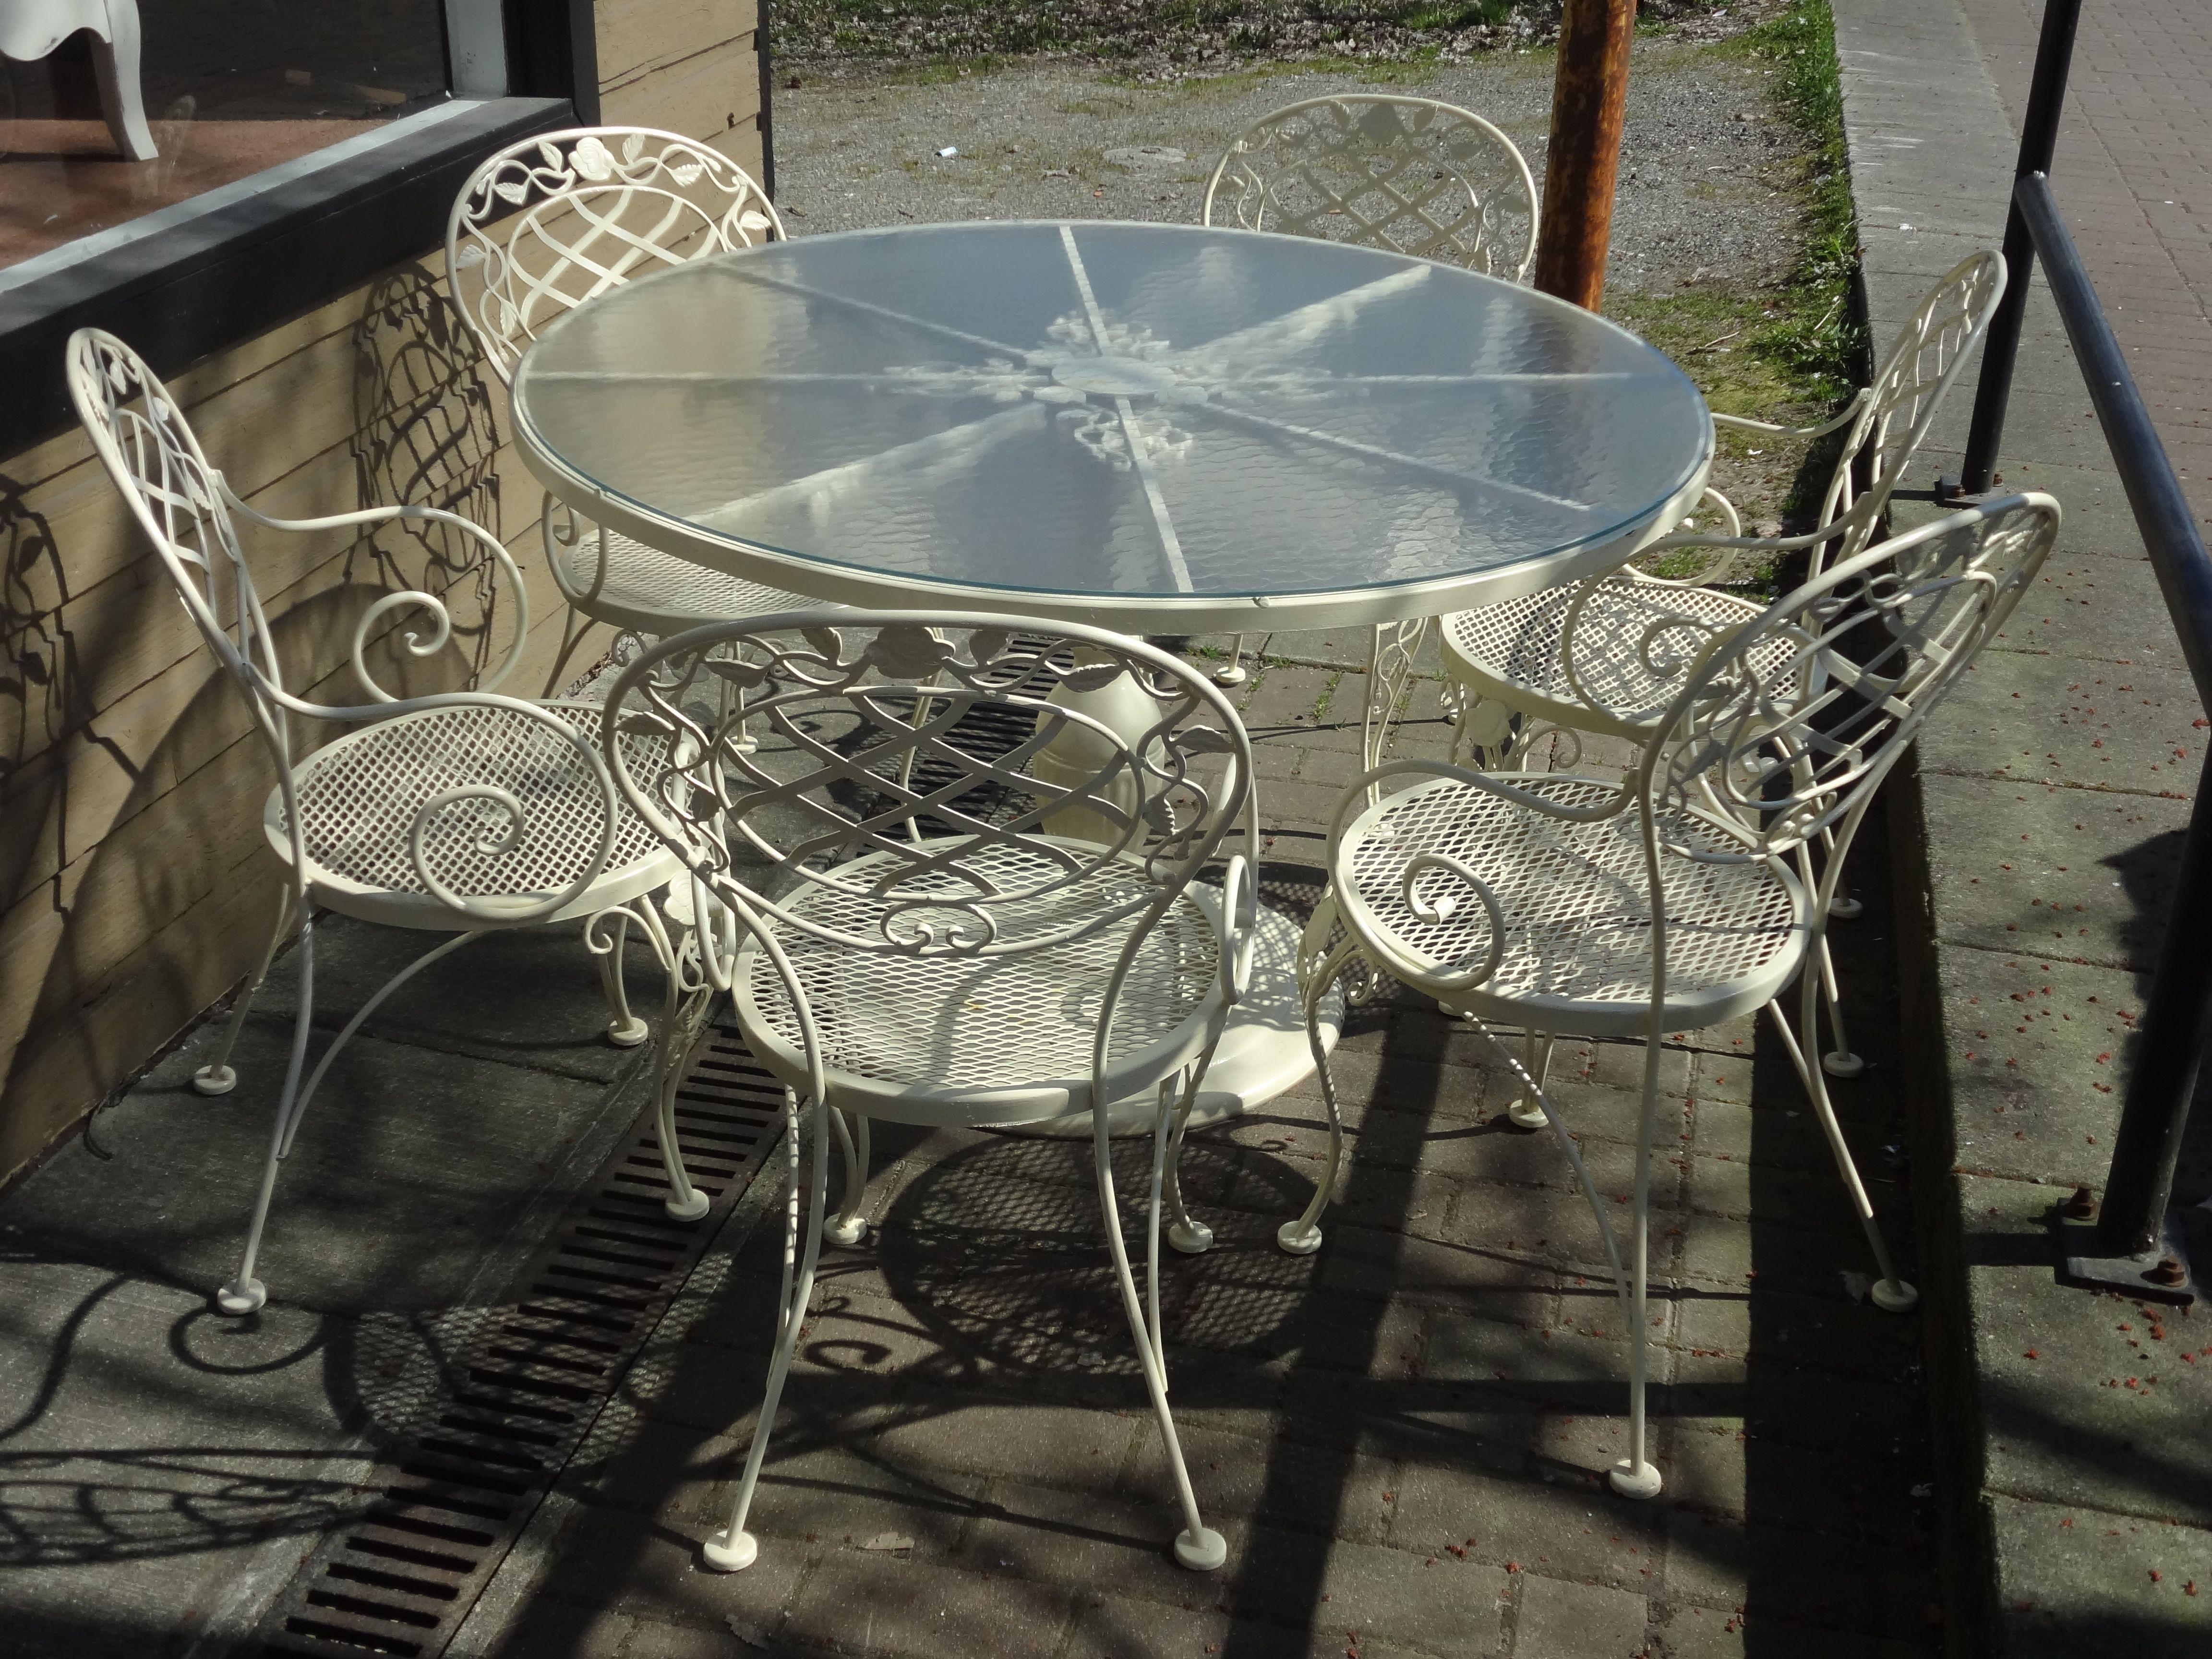 Vintage Shabby Chic Patio Furniture by Woodard | Home ...